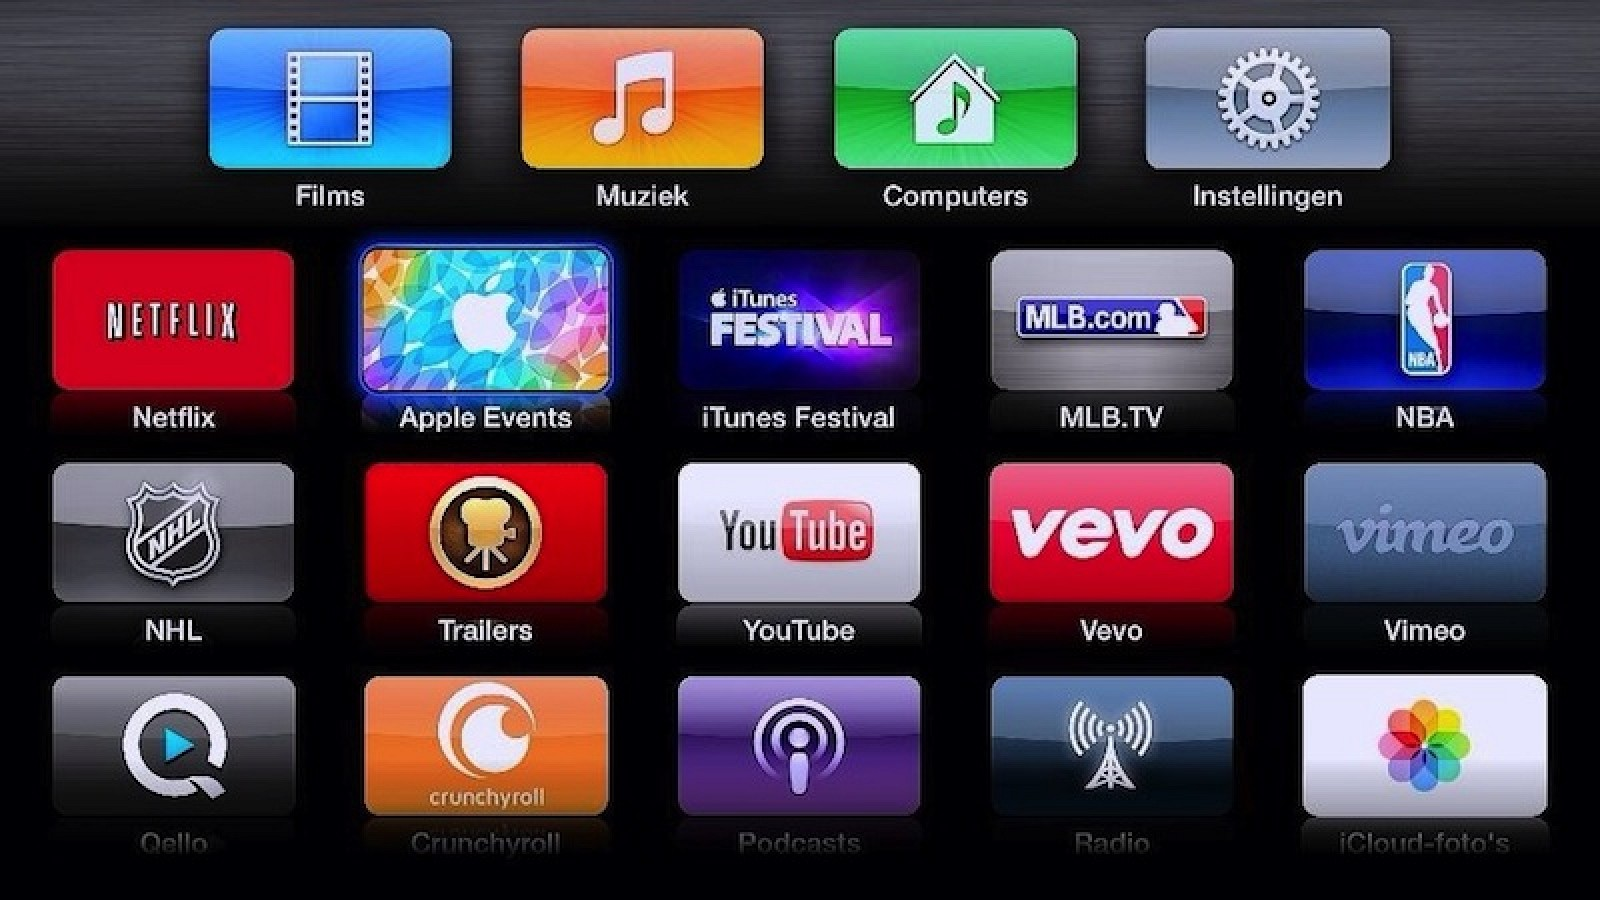 Apple to Offer Live Video Stream of Today's Media Event ...